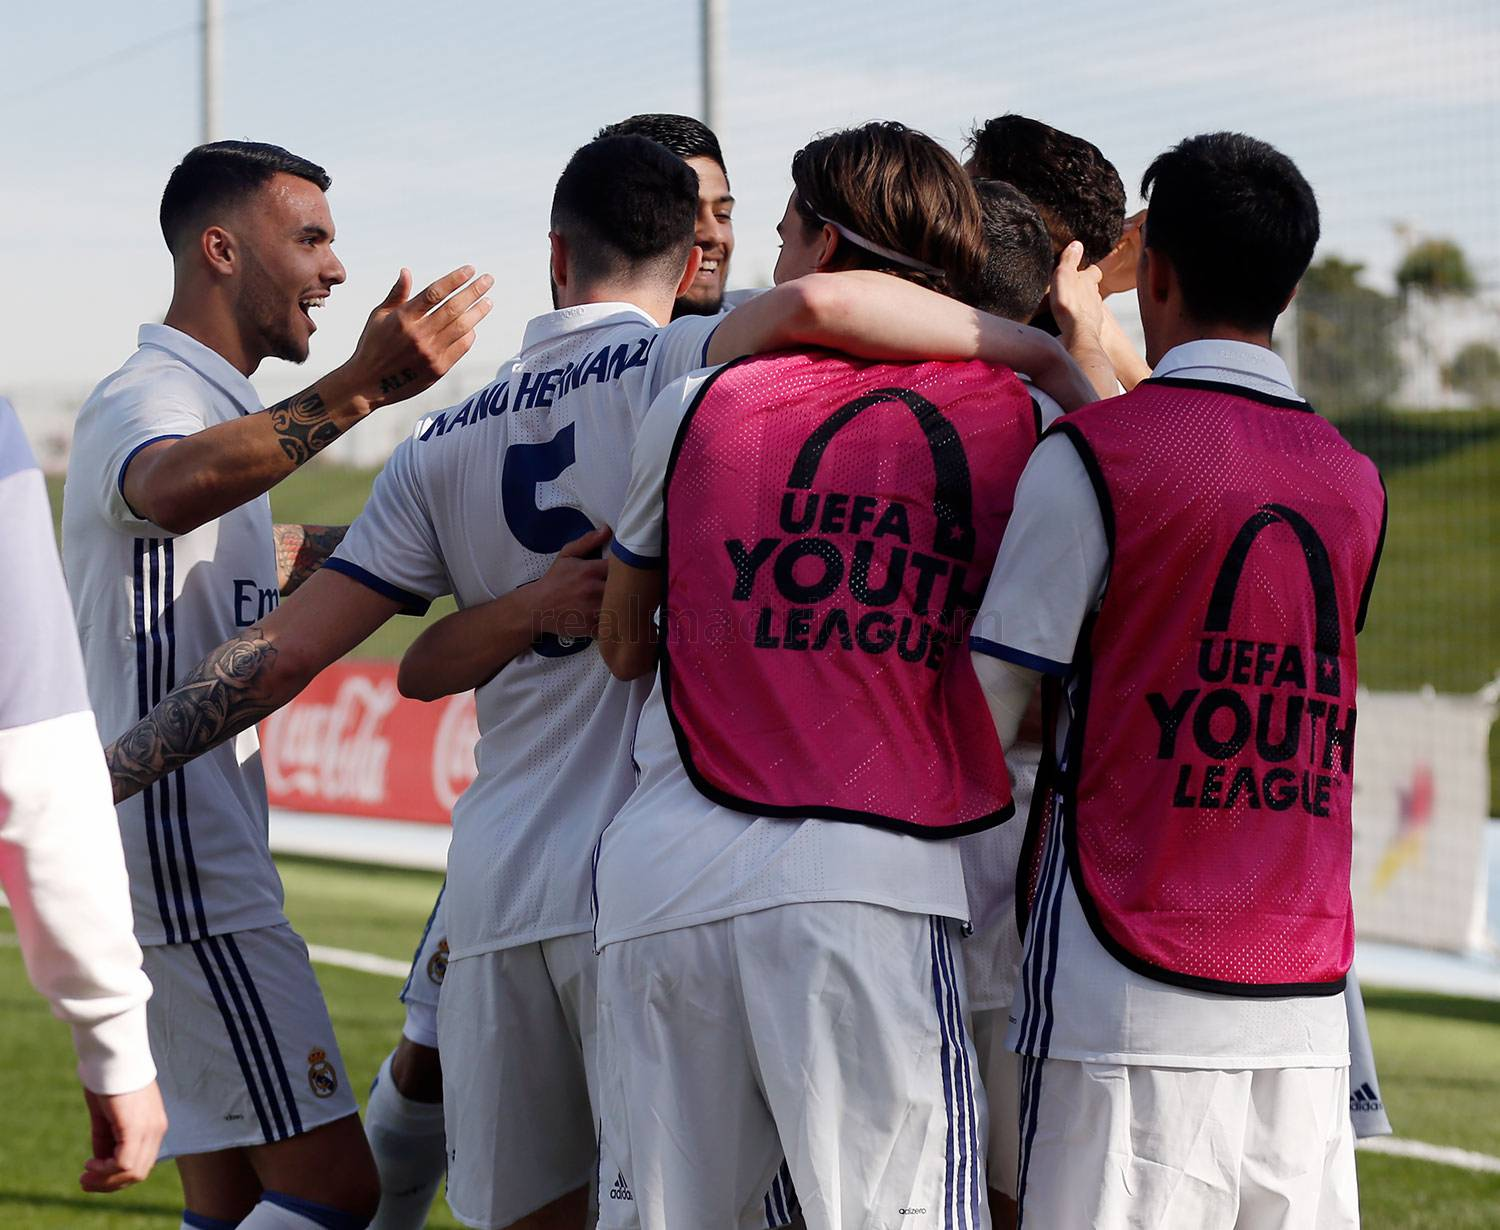 Real Madrid - Juvenil A - Ajax - 08-03-2017